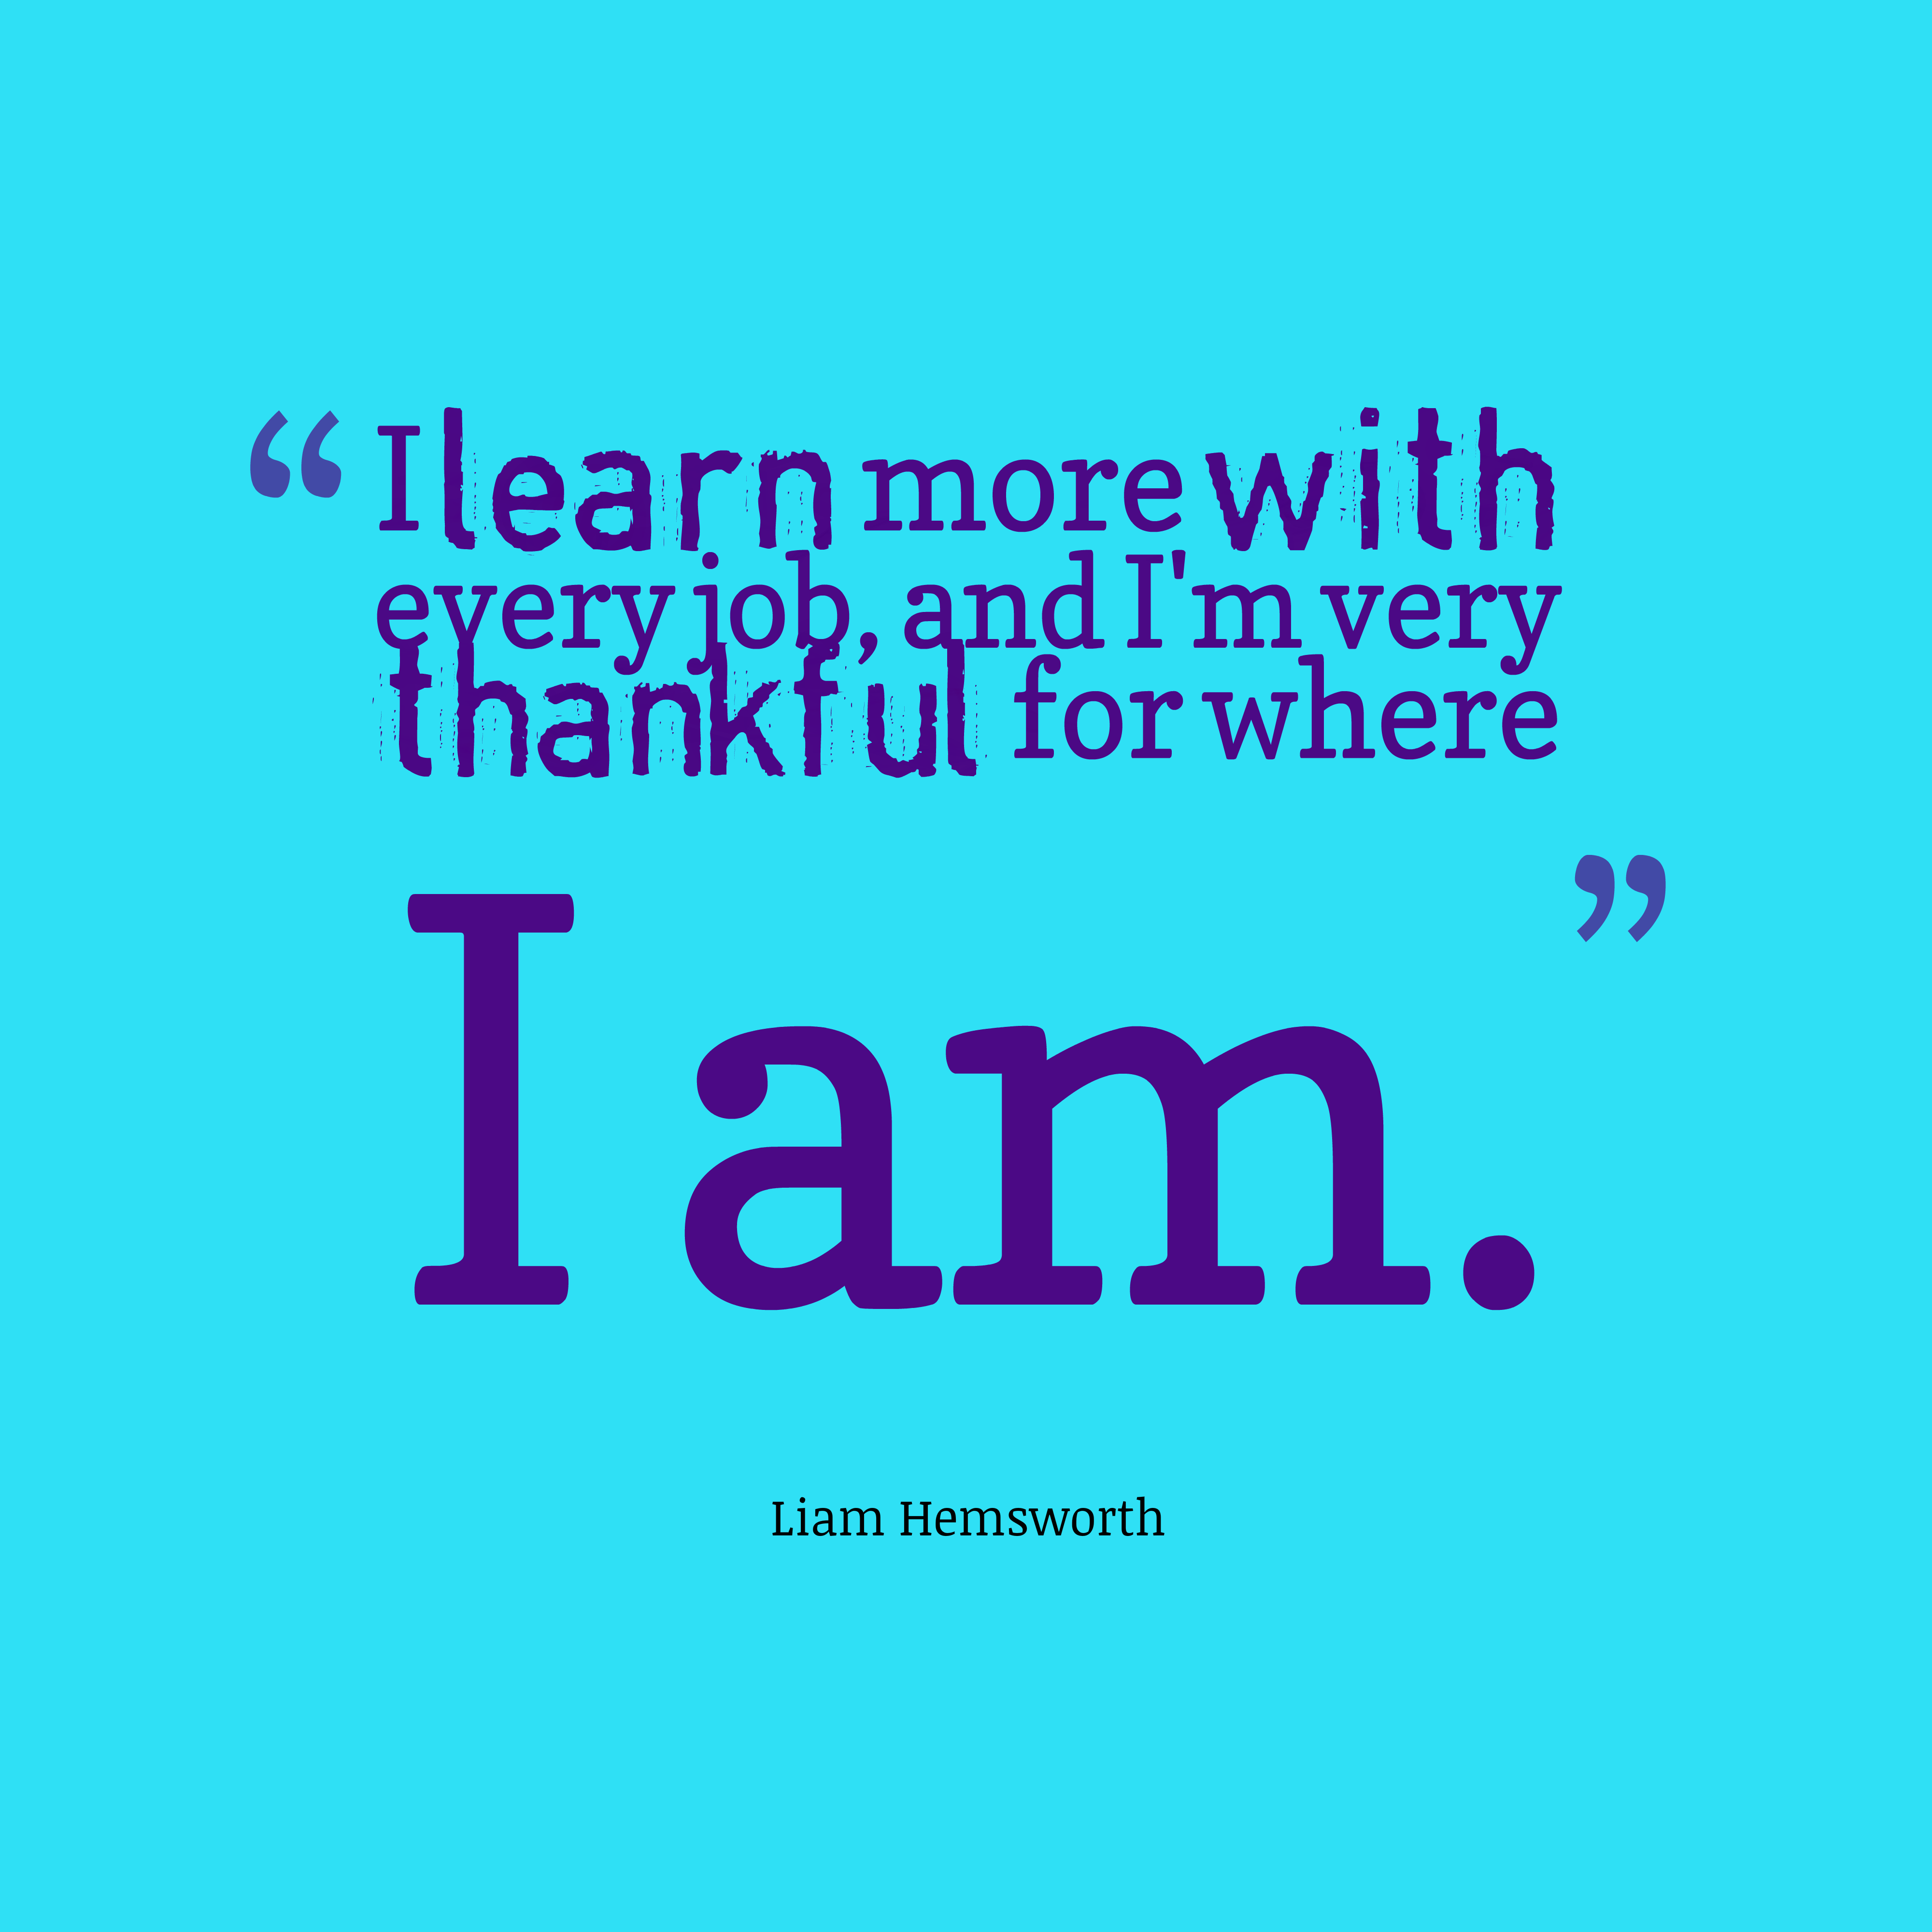 Picture Liam Hemsworth Quote About Thankful.